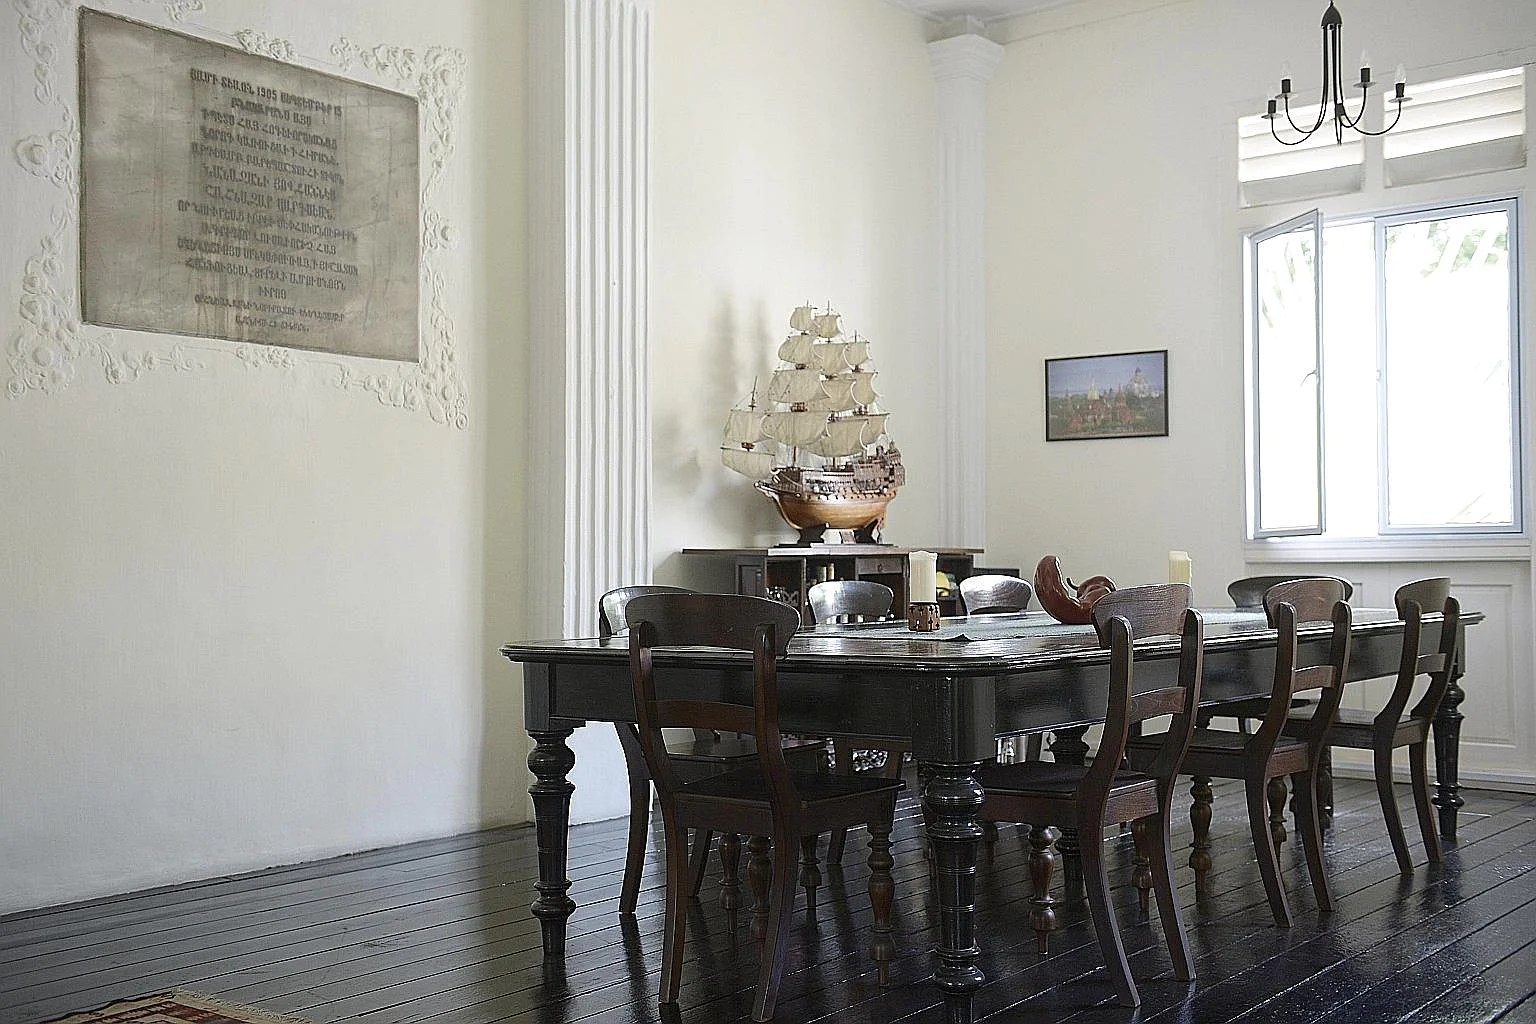 The well-preserved wooden dining set in a corner of the 110-year-old parsonage has been there since the building's early days in the 1900s.